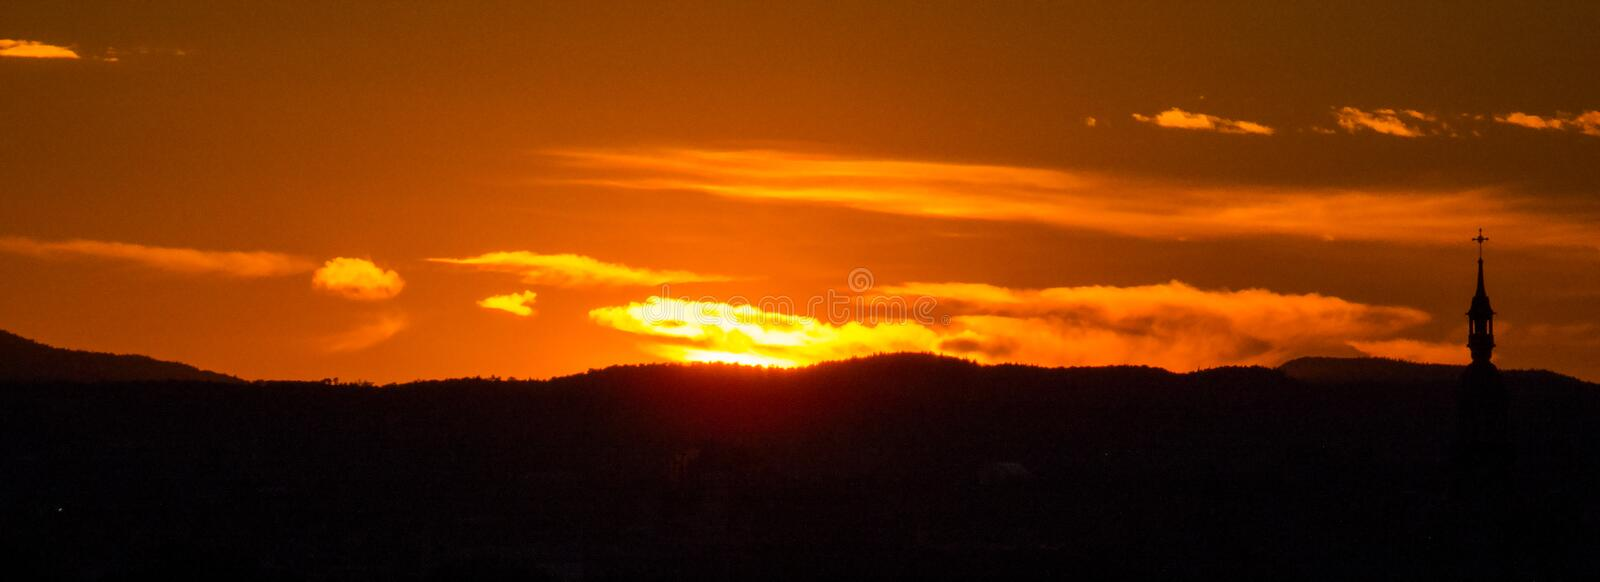 Panoramic Photo: Distant Burning sunset royalty free stock images